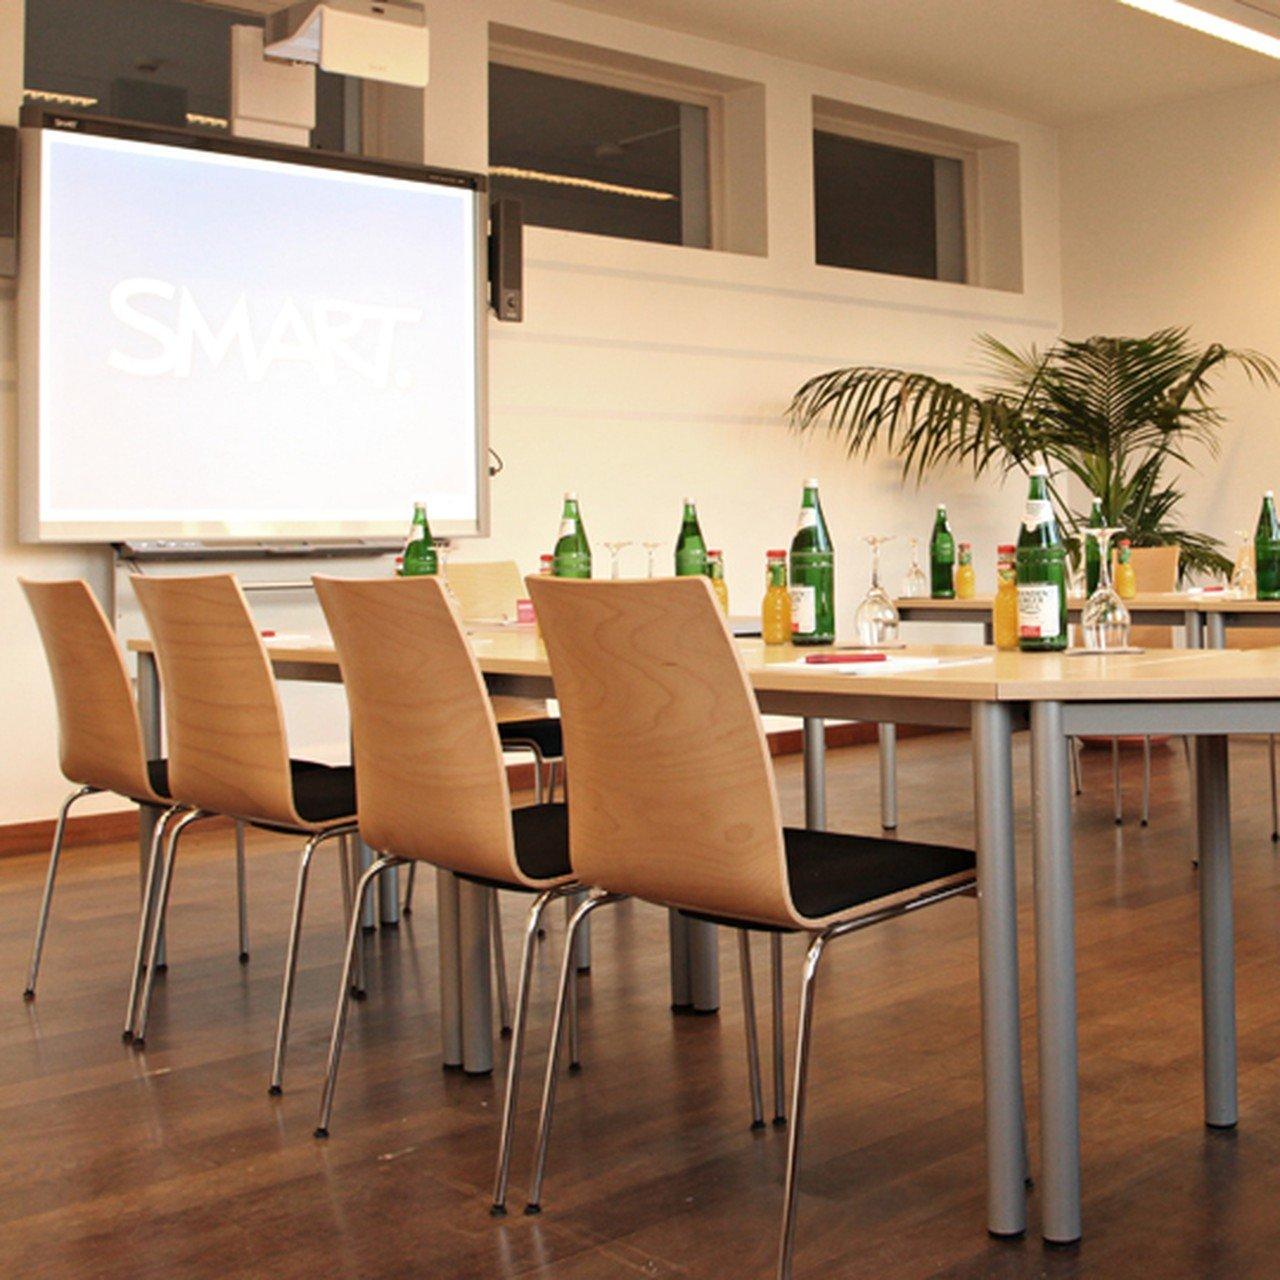 Berlin training rooms Meetingraum GLS - Seminar Room 2 image 0